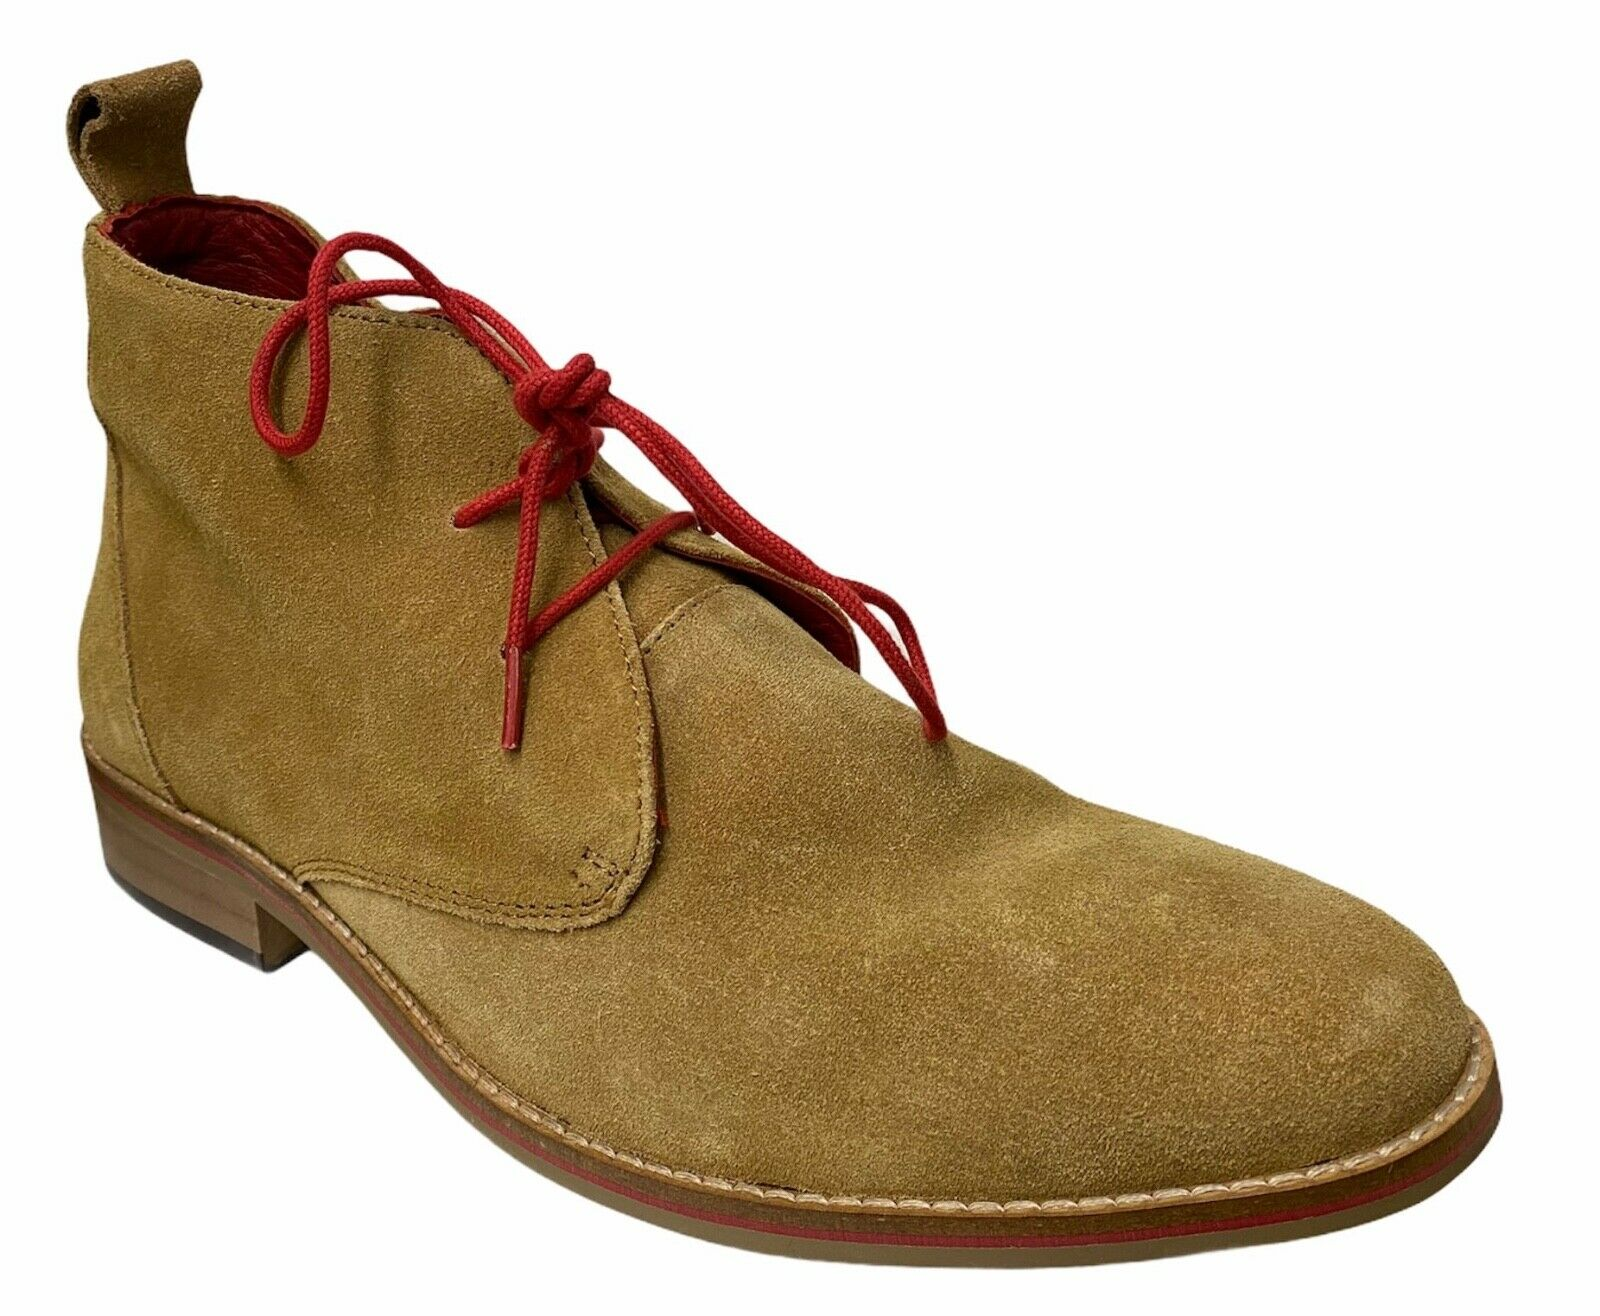 Maybury Mens Gents Stylish Smart Sand Suede Lace Up Chukka Boots New Size 7.5 11